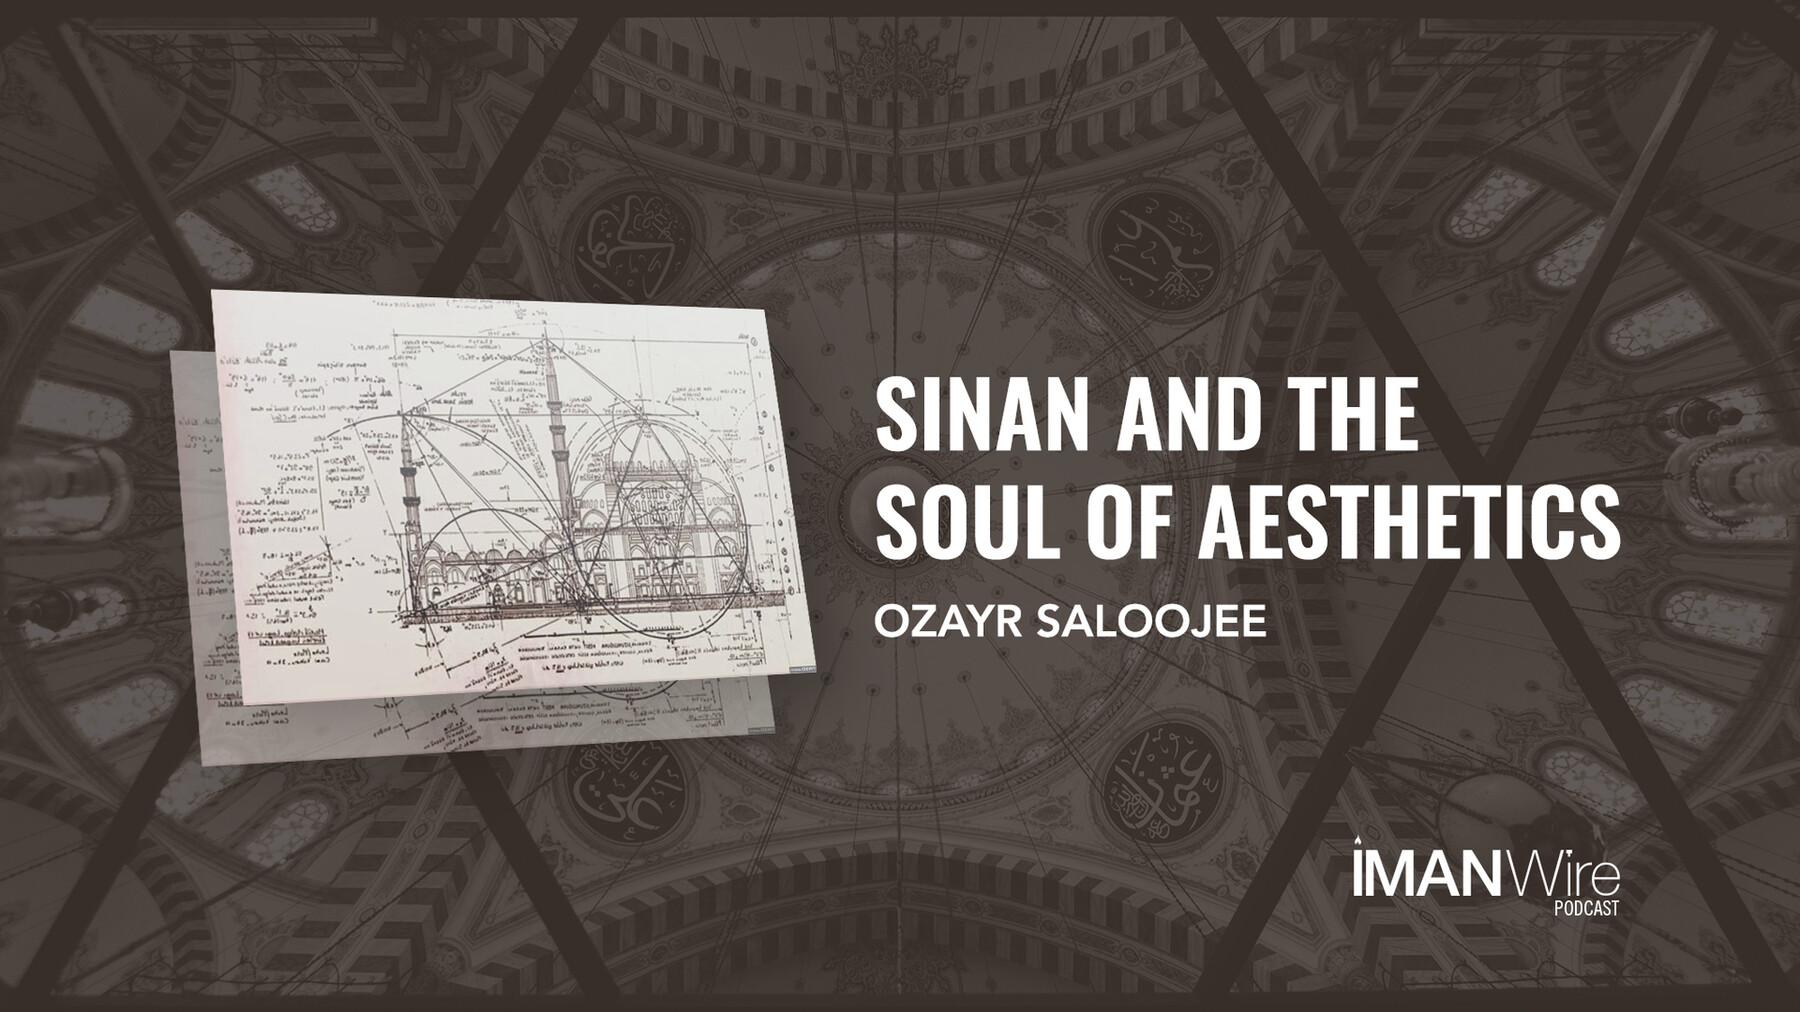 20201225 THUMBNAIL Sinan and the Soul of Aesthetics Ozayr 1920x1080